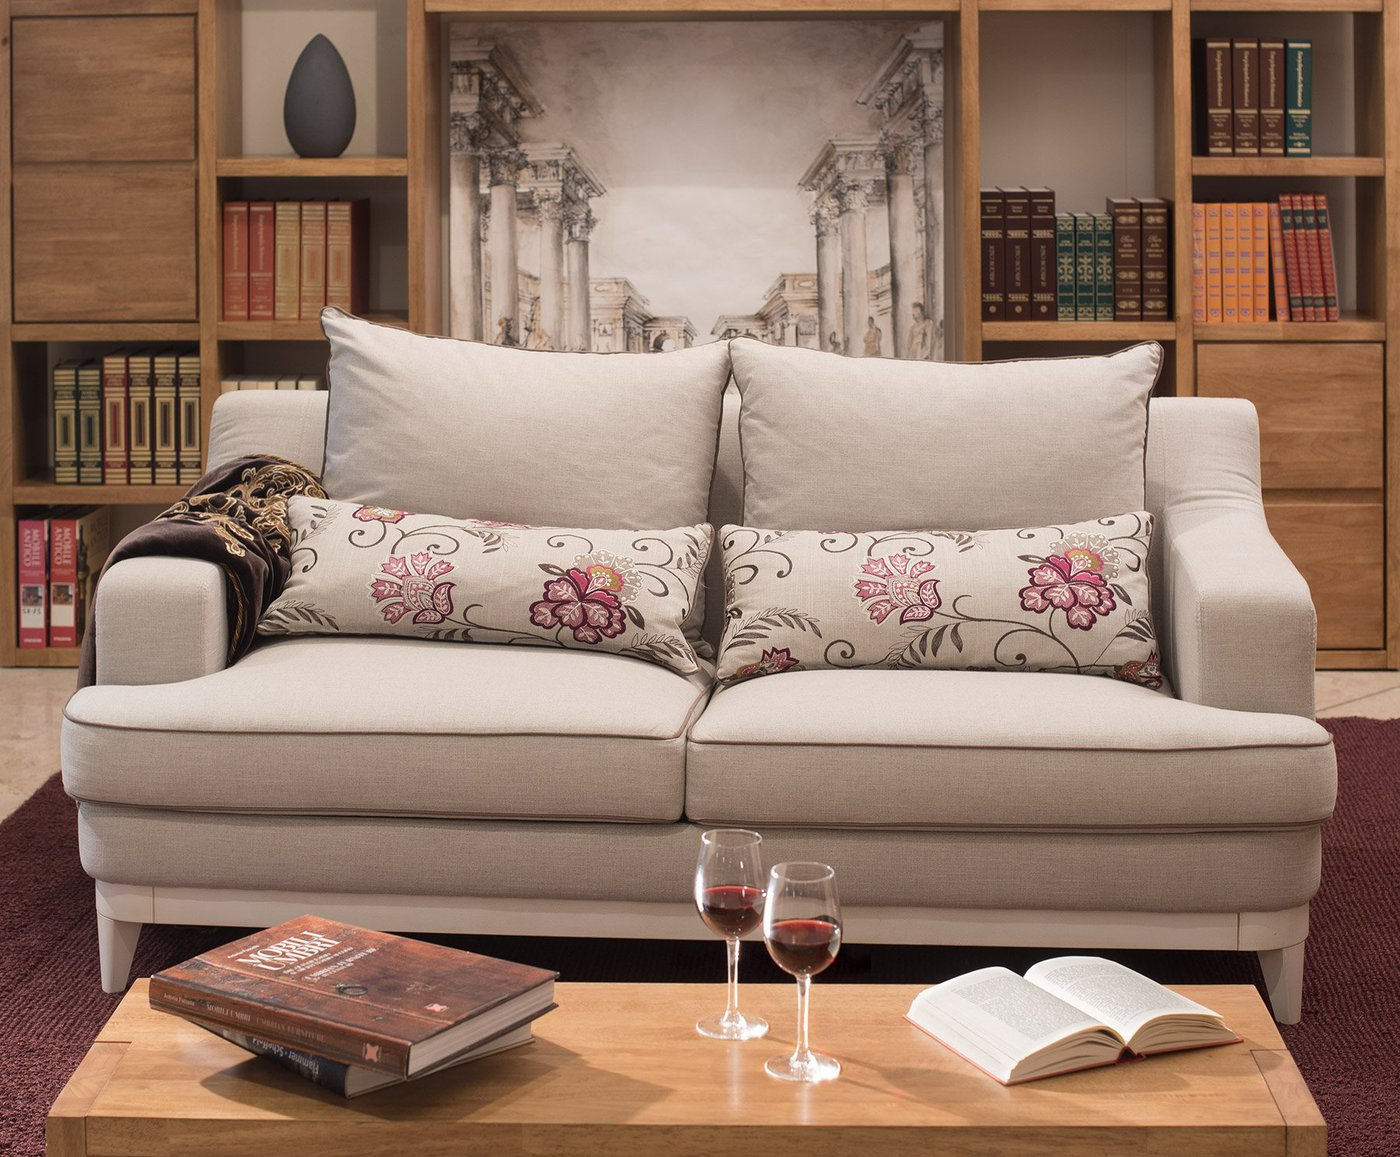 veracchi_mobili_living_room_classic_italian_sofa_furniture_umbria